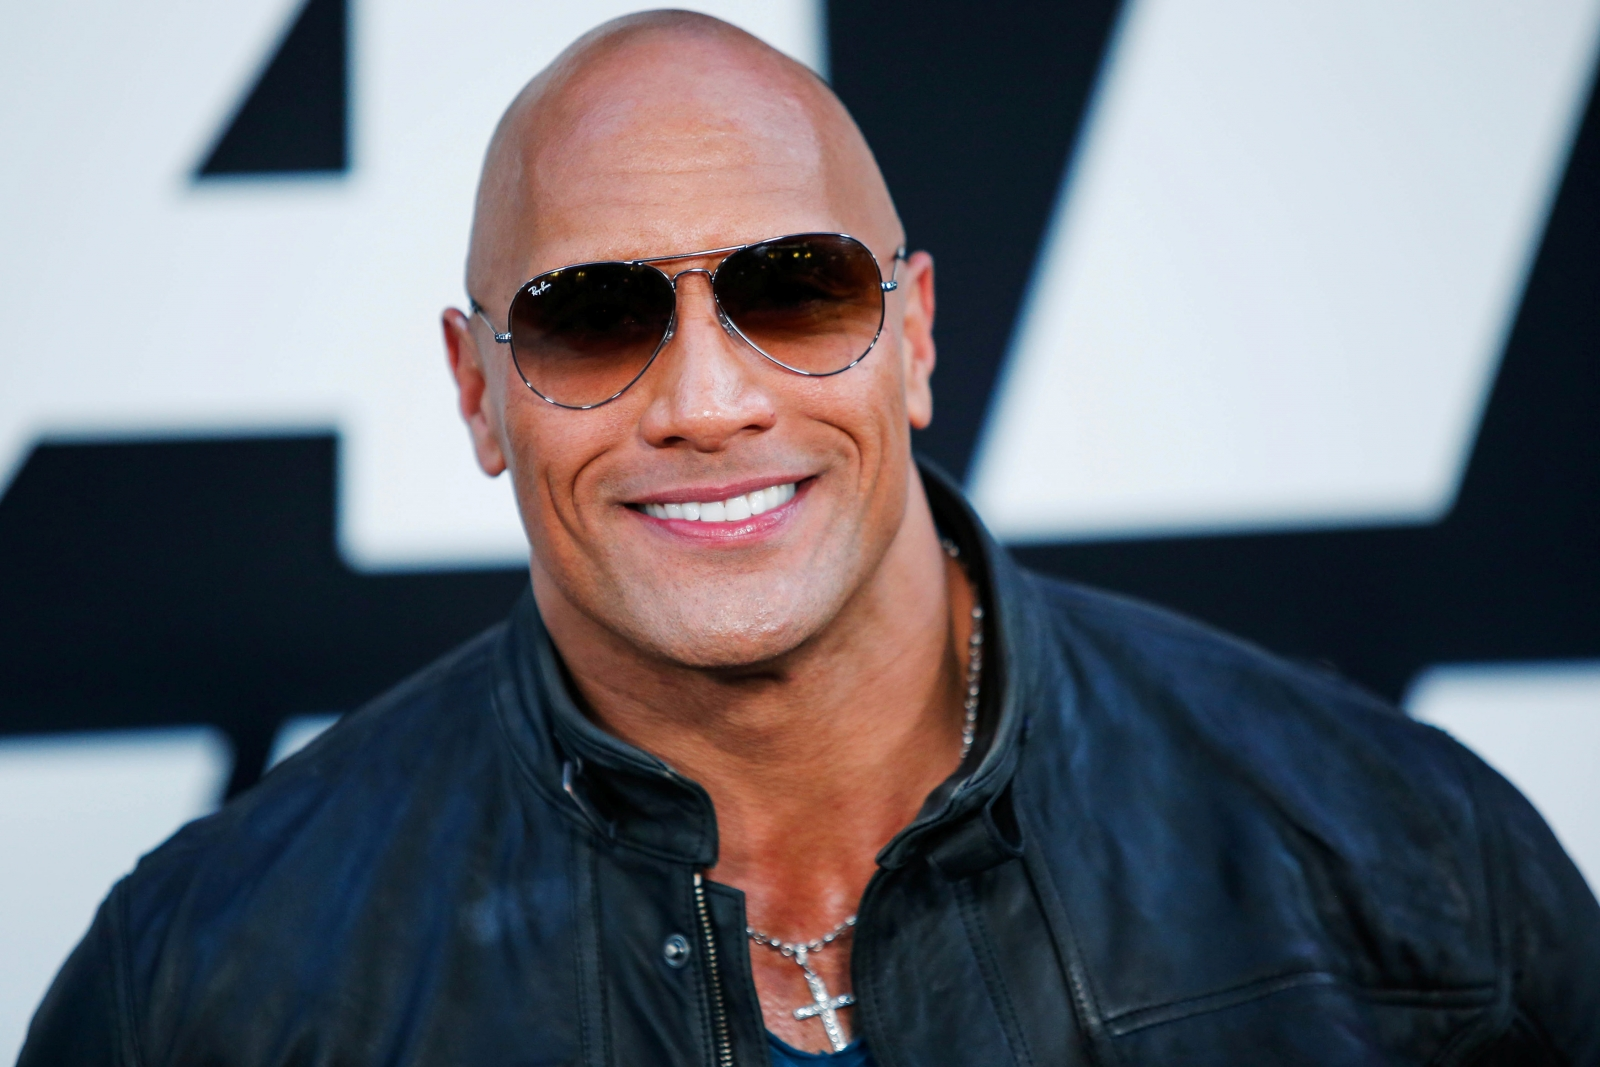 Dwayne Johnson: Feminist, future president, hydration fan and other revelations from GQ interview